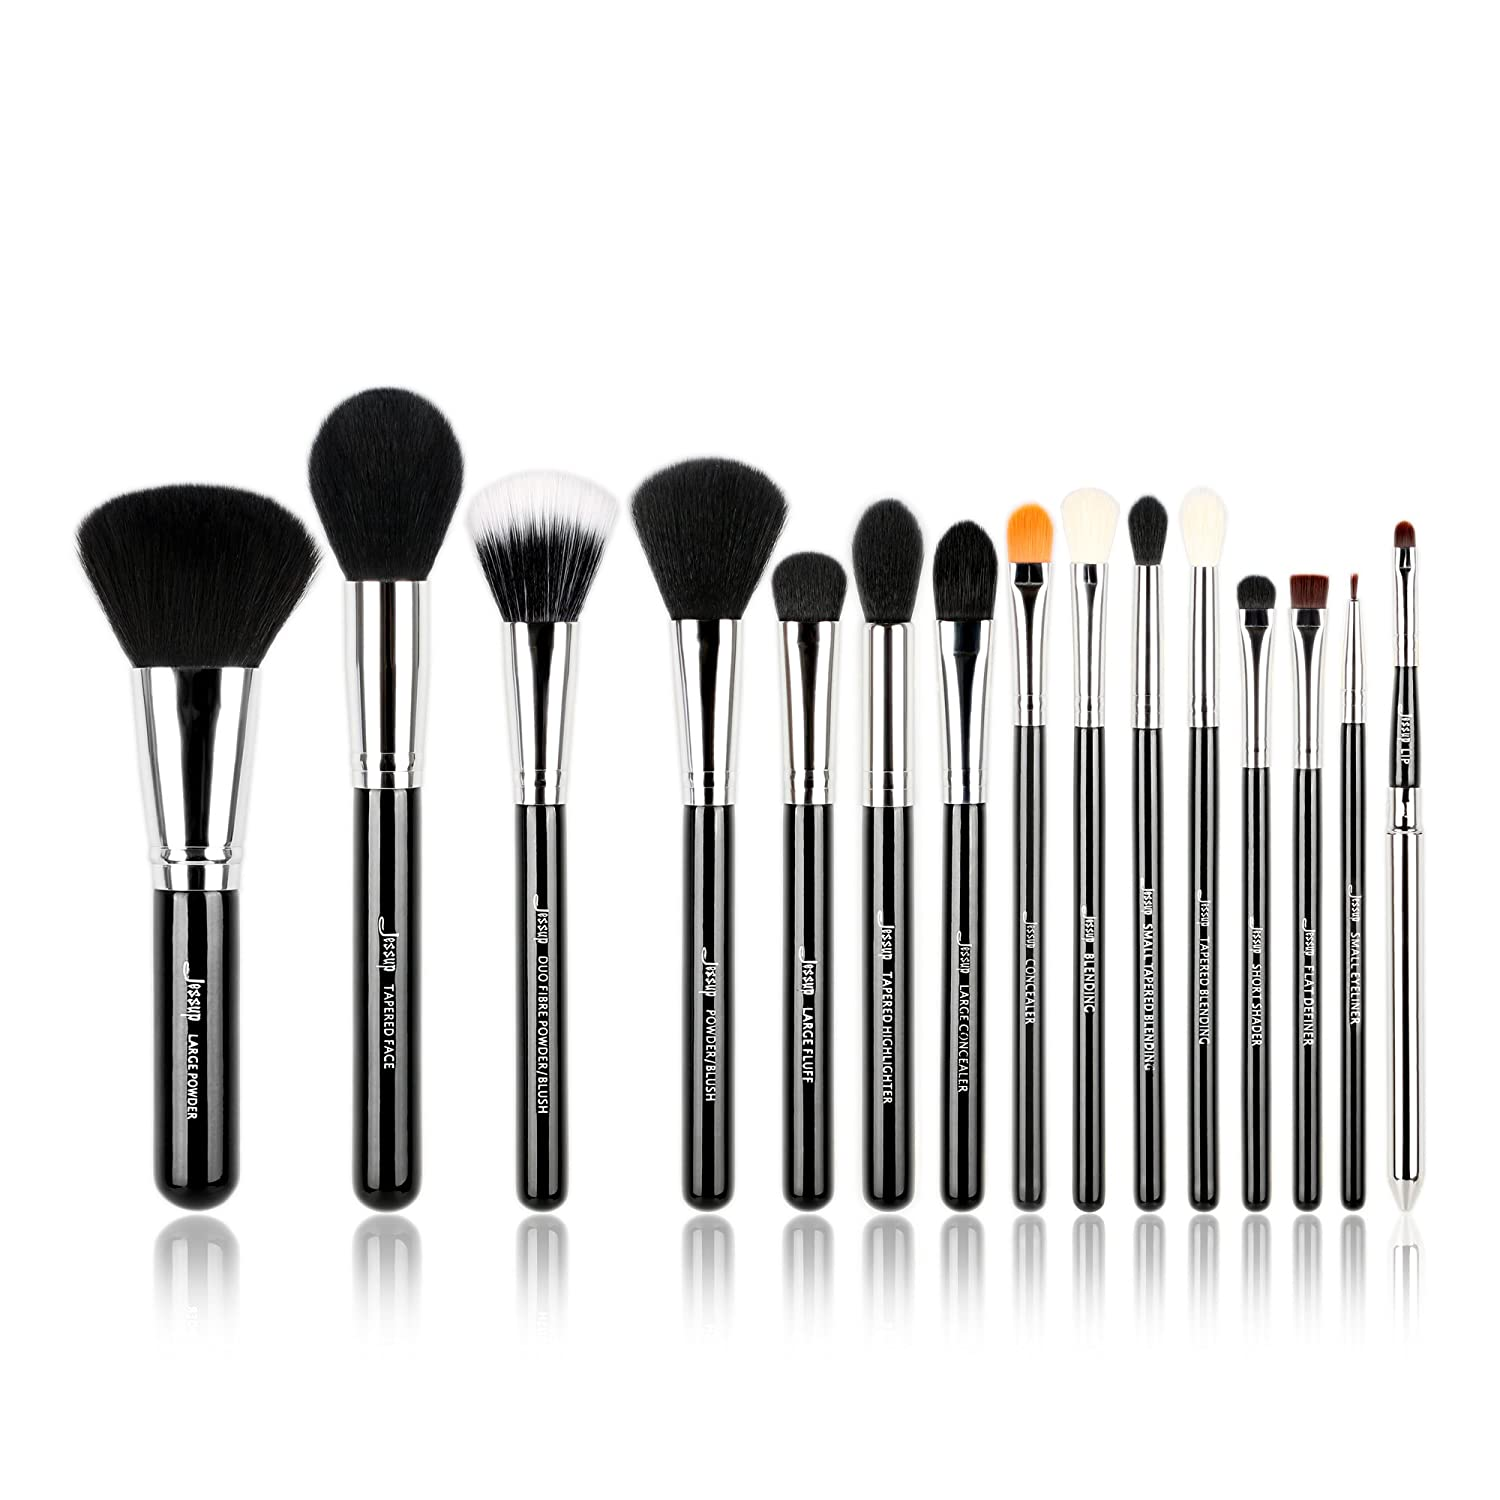 Jessup Pro Makeup Brushes 15 Pcs Makeup Brush Set Beaury Cosmetics Make Up Powder Foundation Eyeshadow Eyeliner Blending Lip Brush Tools (Black/Silver) T092 Mankalun